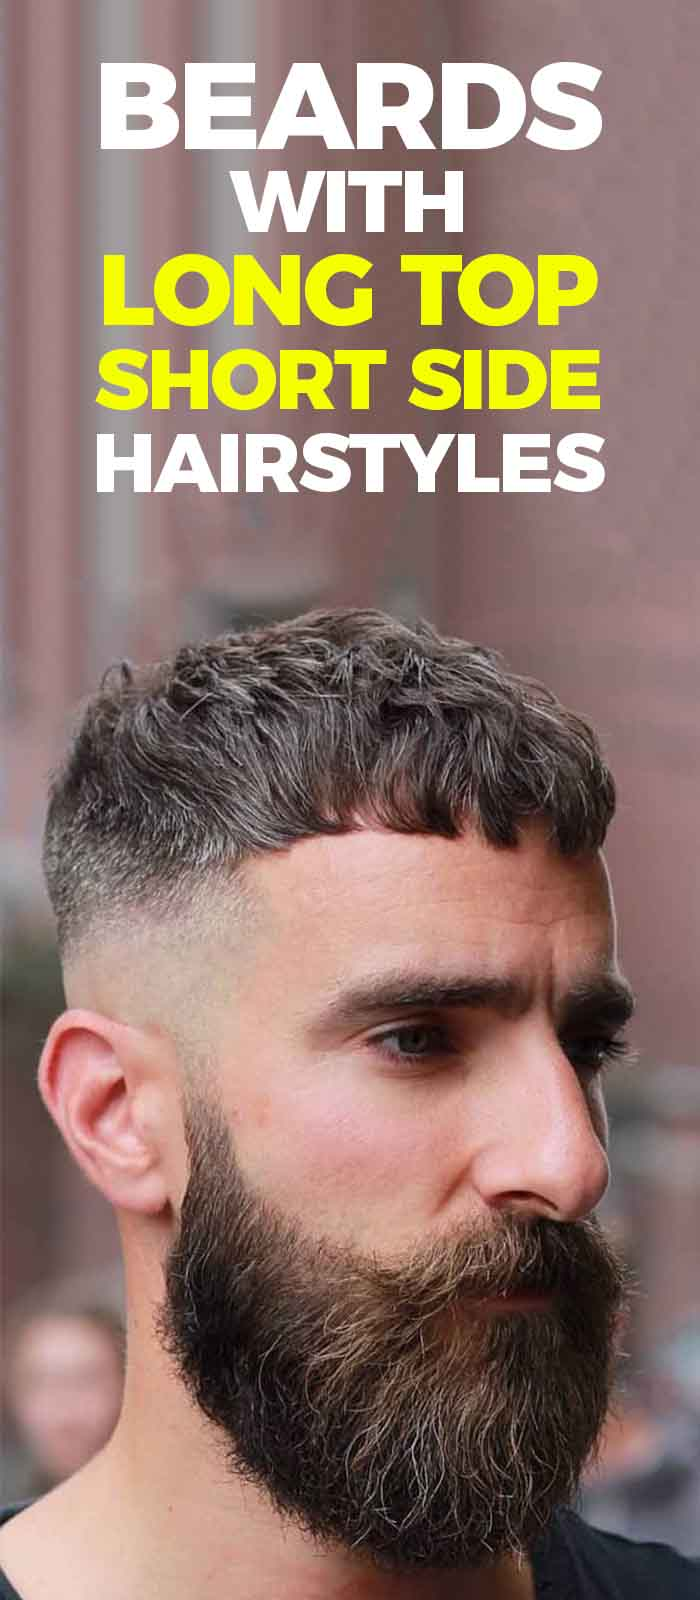 French-Crop-Beard with-Skin-Fade short hairstyle for men!